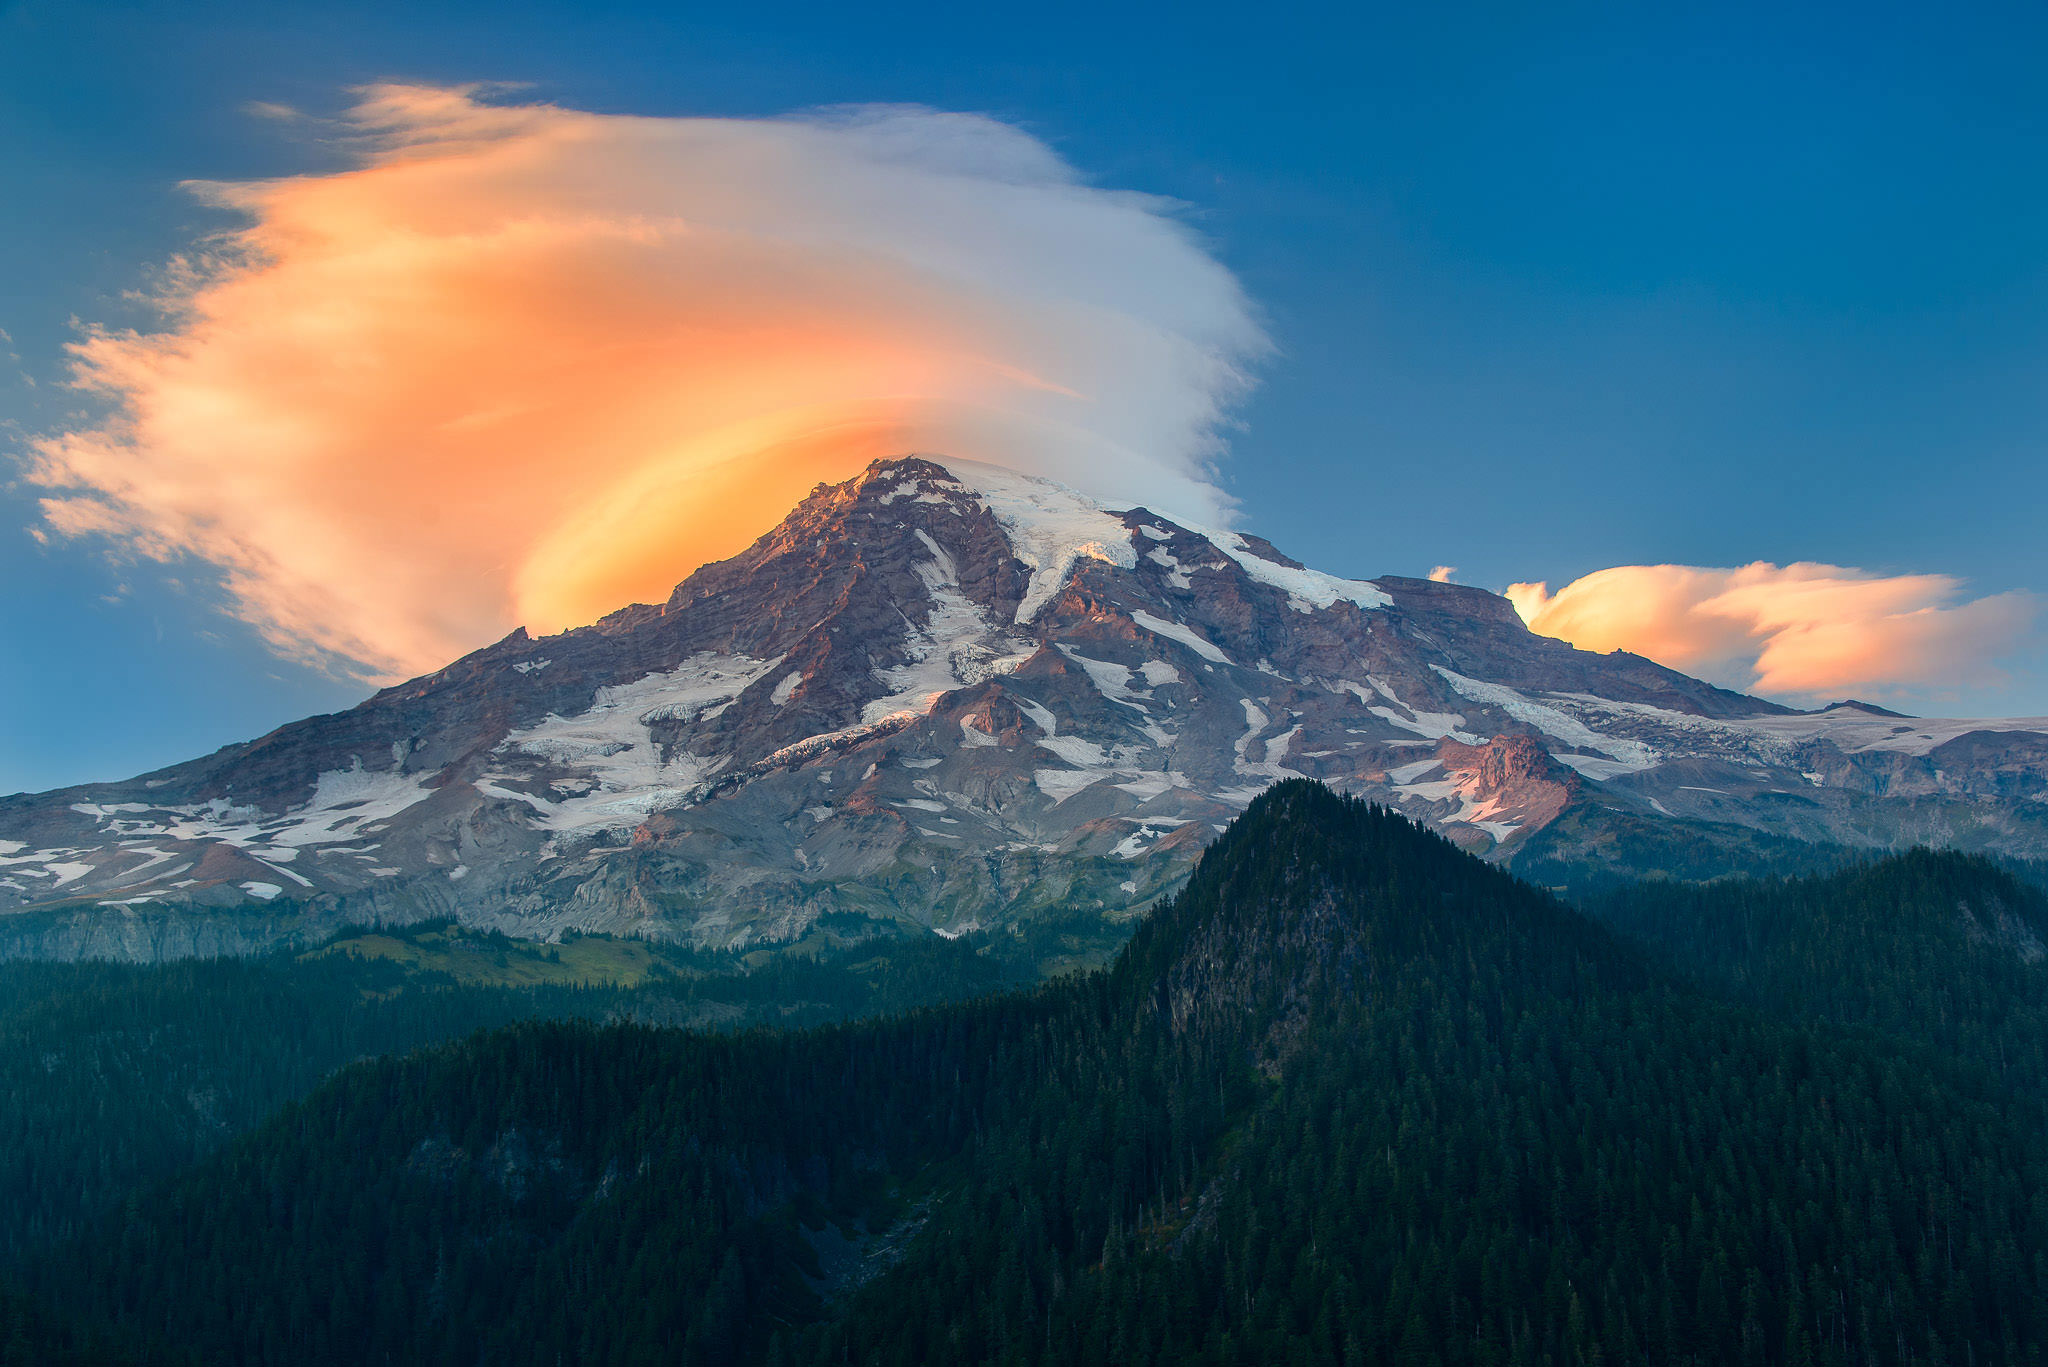 How To Photograph Clouds